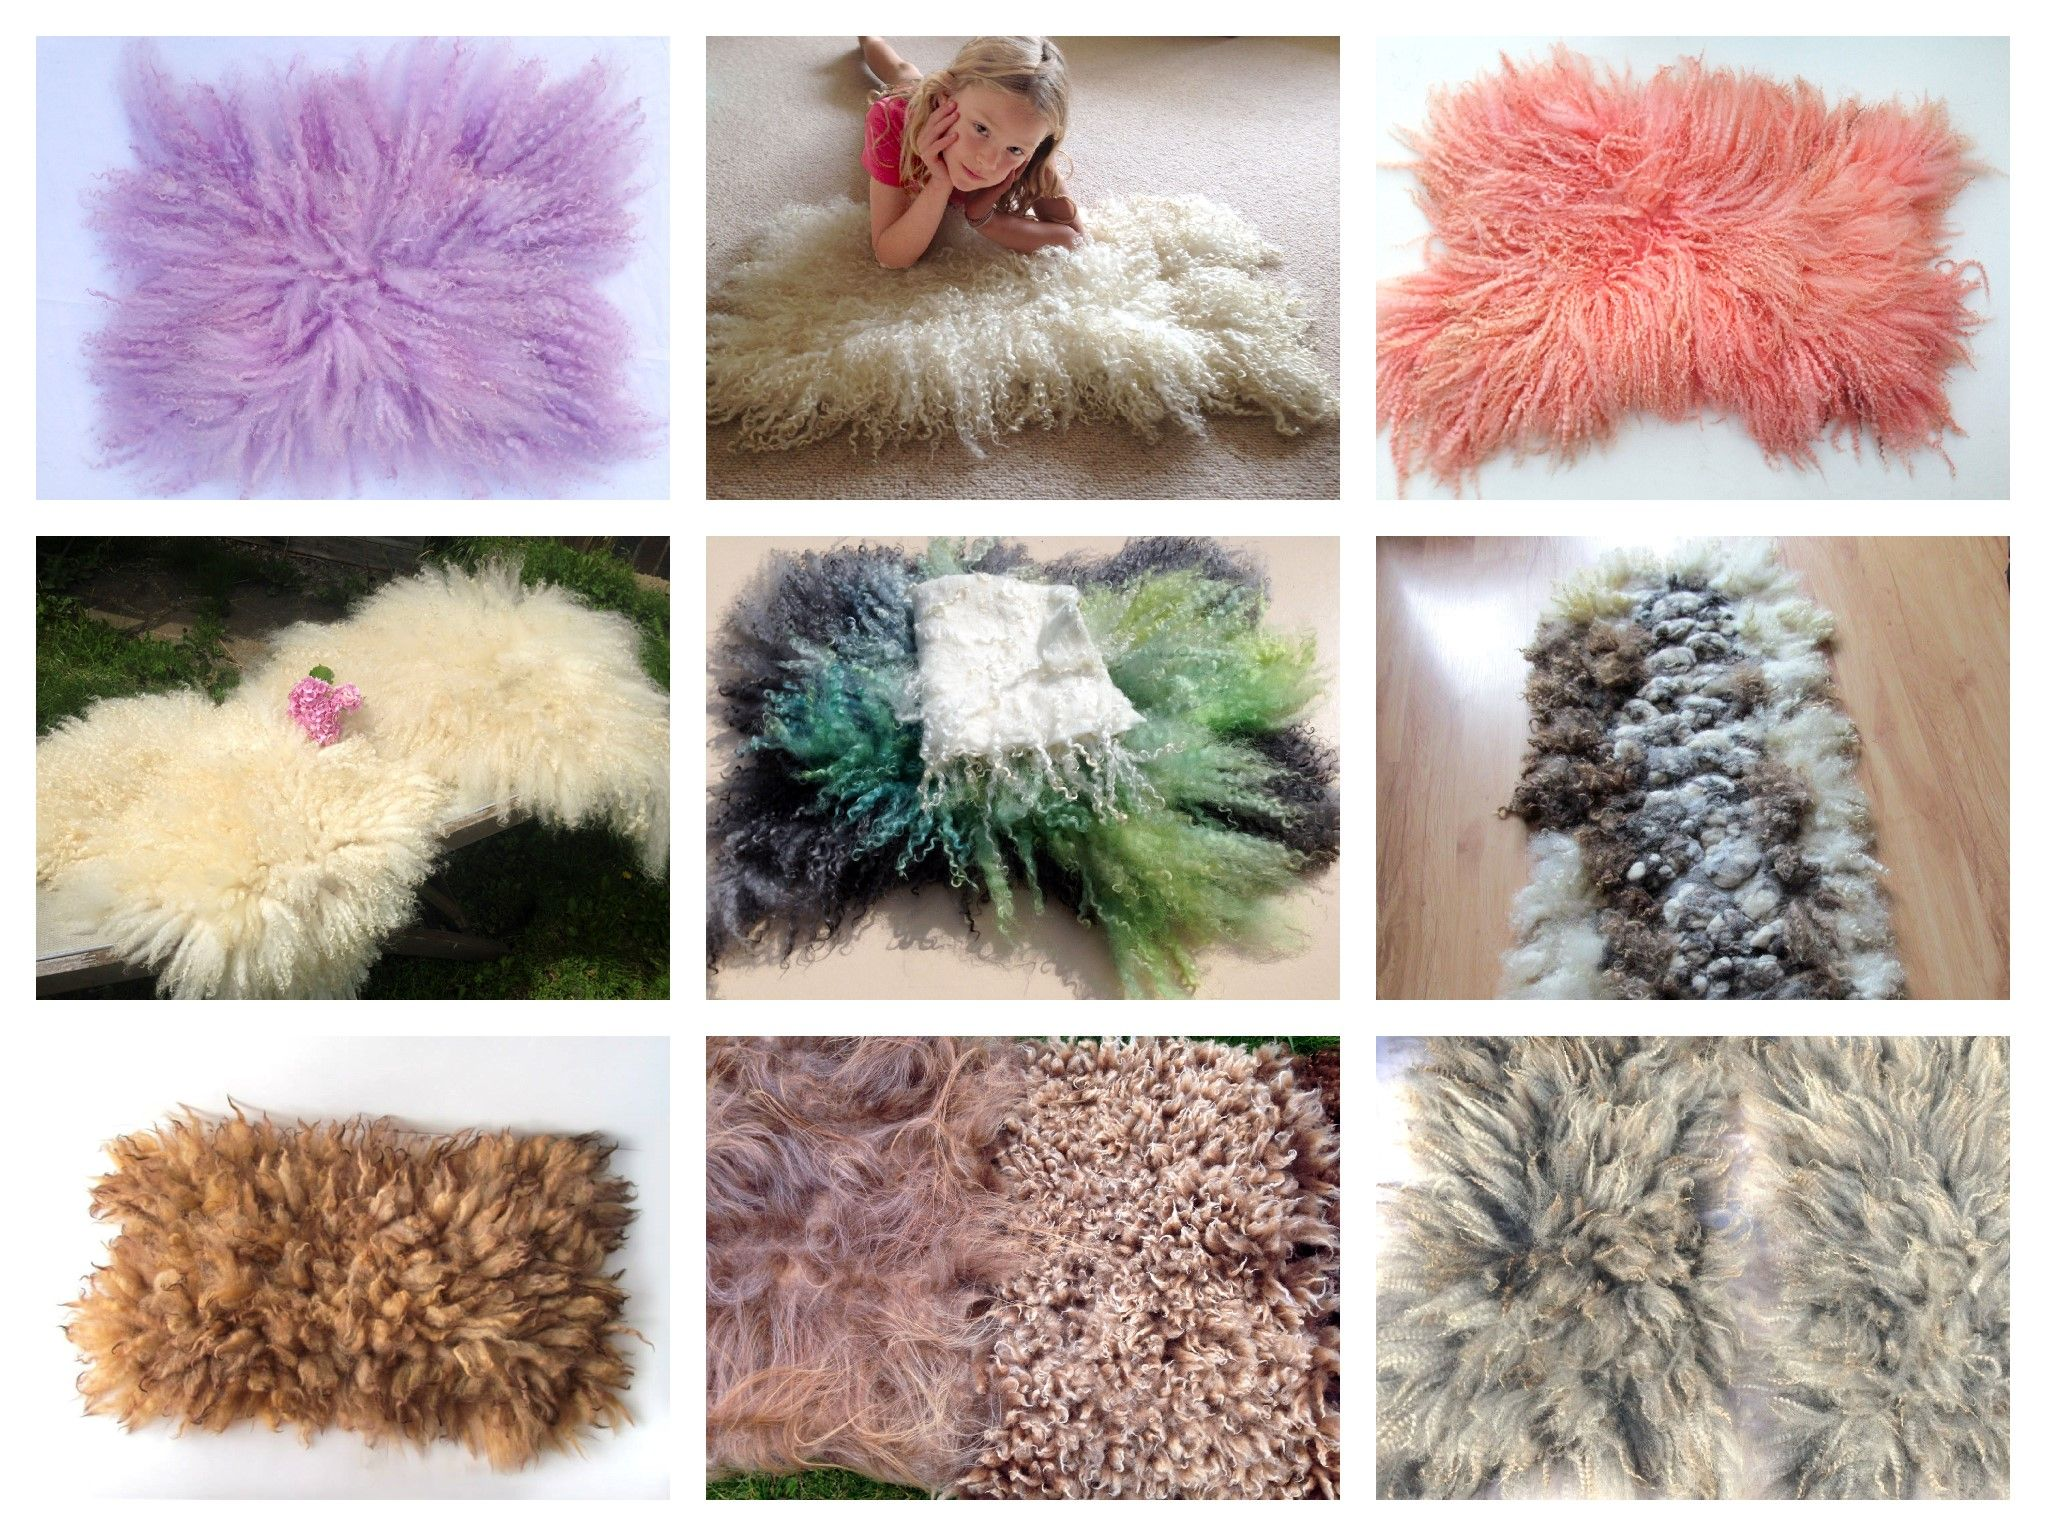 Curly Fluffy Flokati Rugs Felt Fur Hand Felted Rug Mat Blanket By Feltfur Made From 100 Pure Wool By Hand Felting Lovel Flokati Rugs Hand Felted Rugs